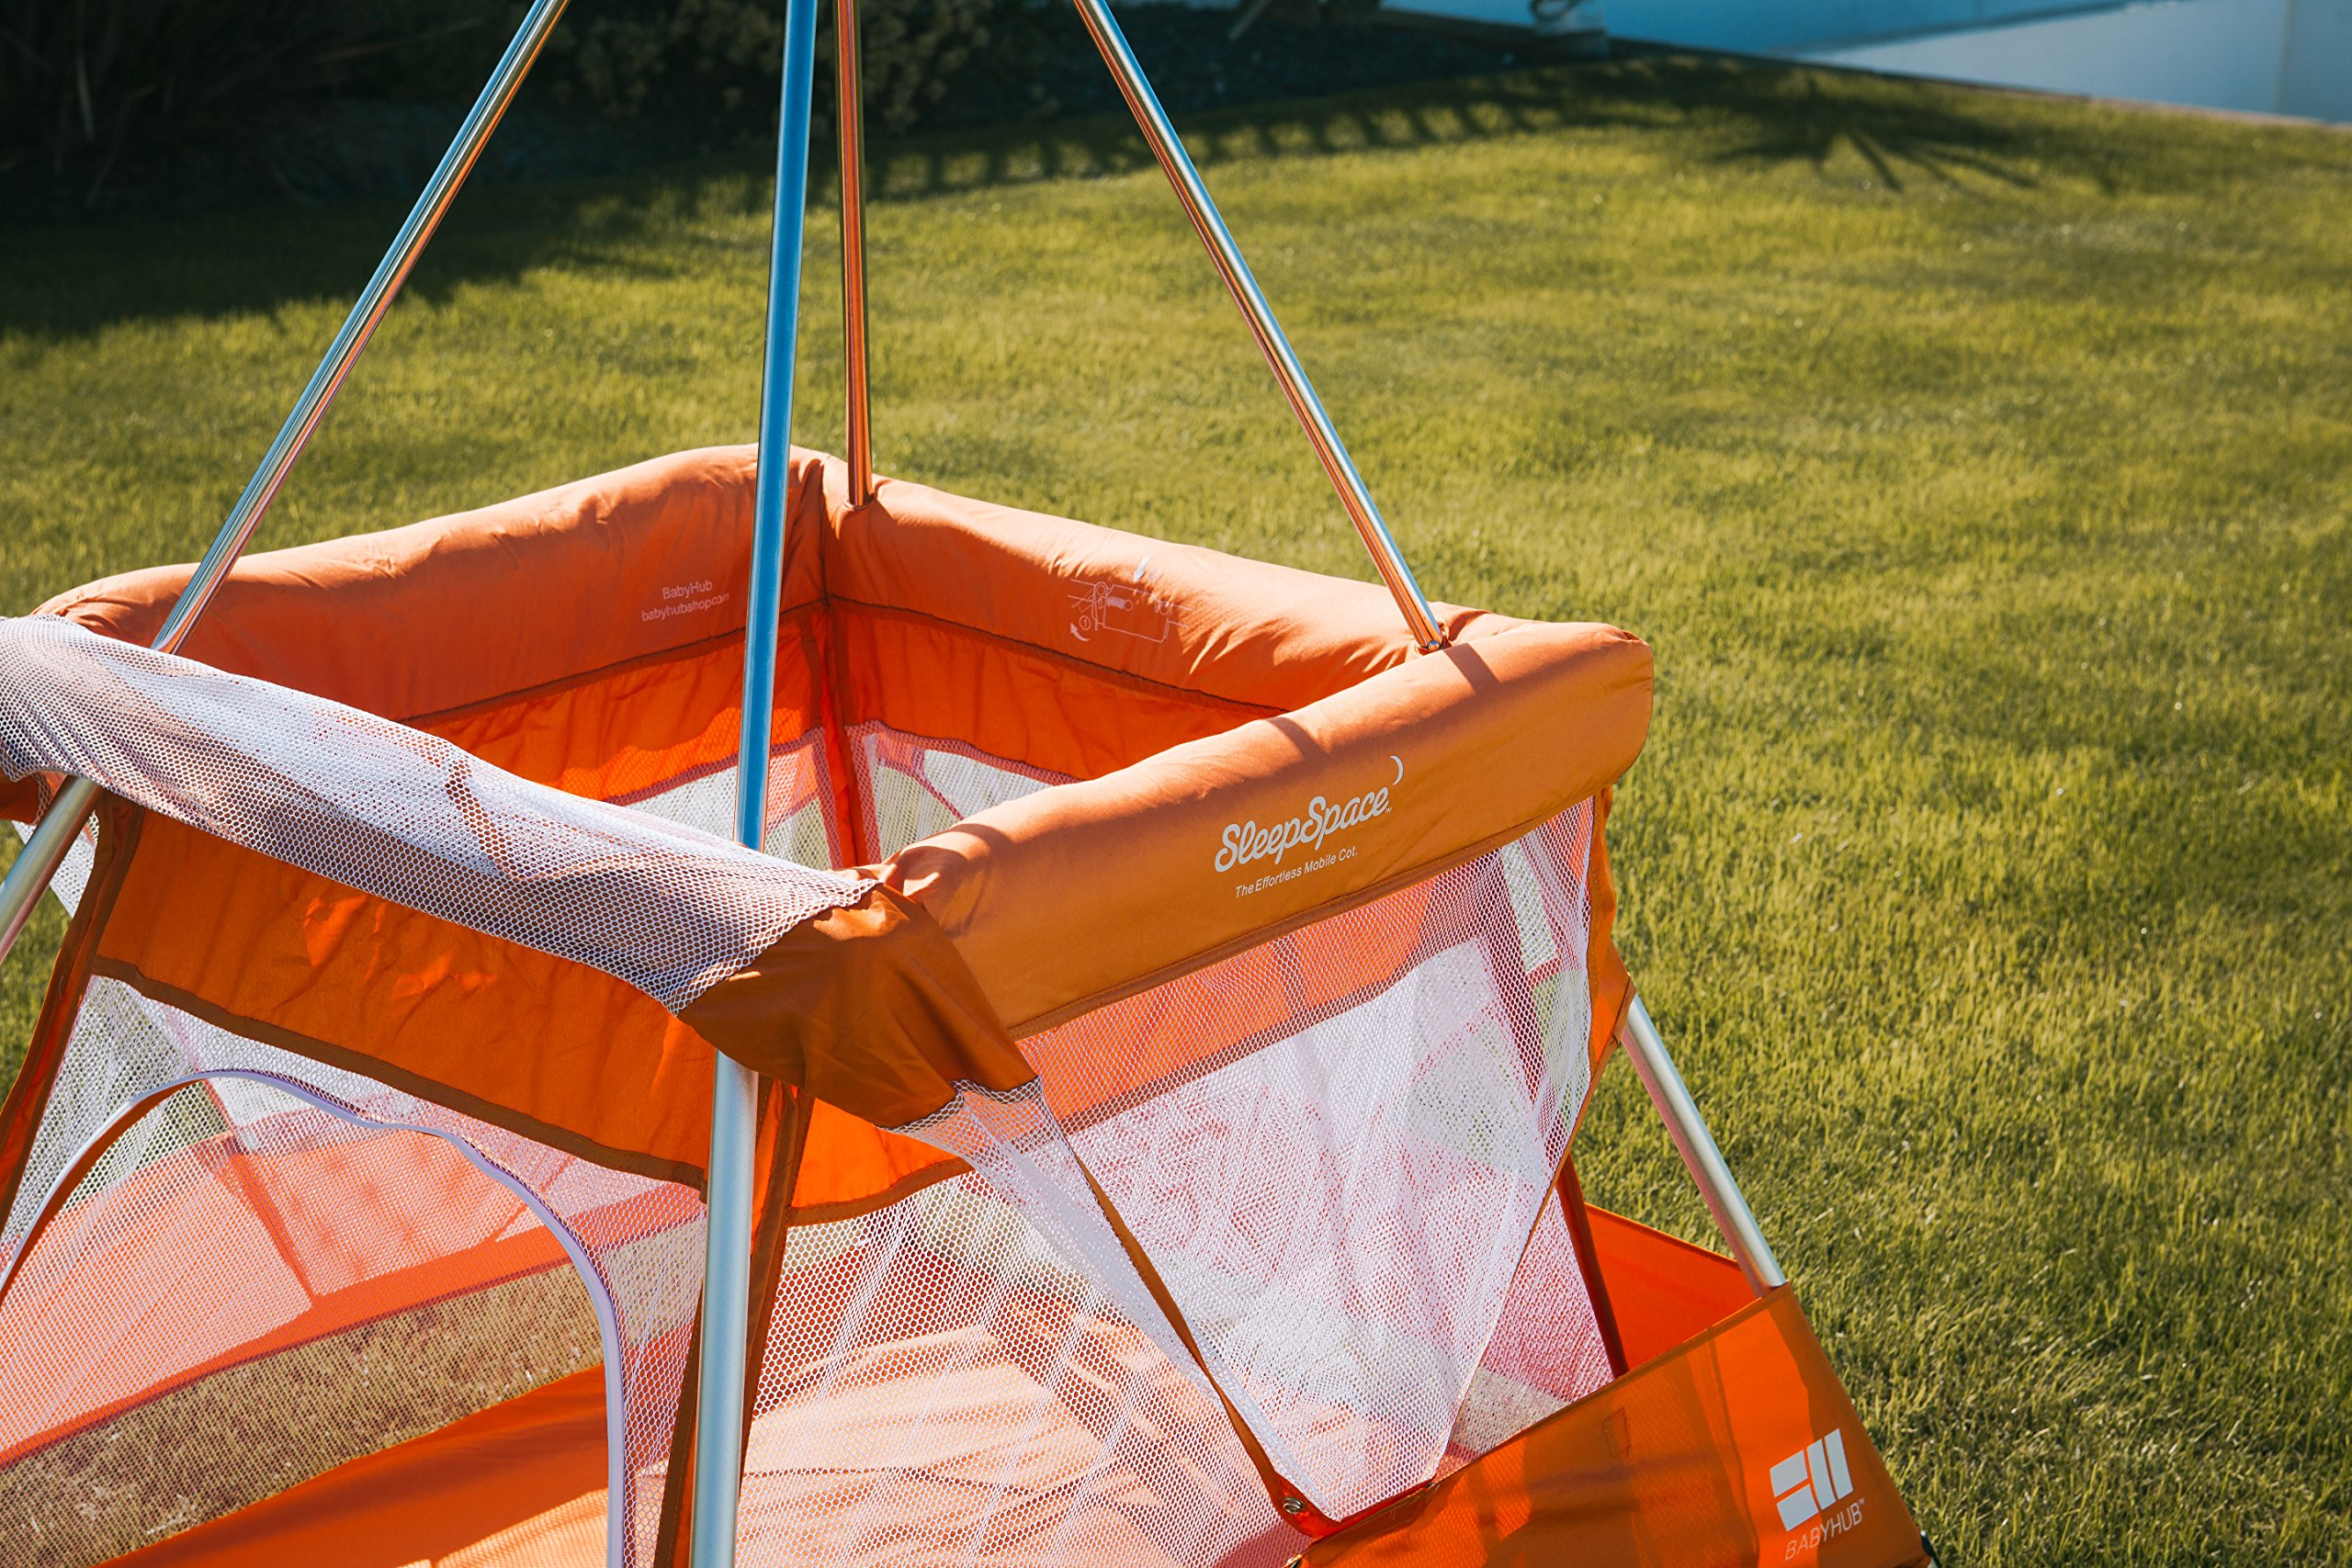 BabyHub SleepSpace Travel Cot with Mosquito Net, Orange BabyHub Three cots in one; use as a travel cot, mosquito proof space and reuse as a play tepee Includes extra mosquito net cover that can be securely in place Can be set up and moved even while holding a baby 6